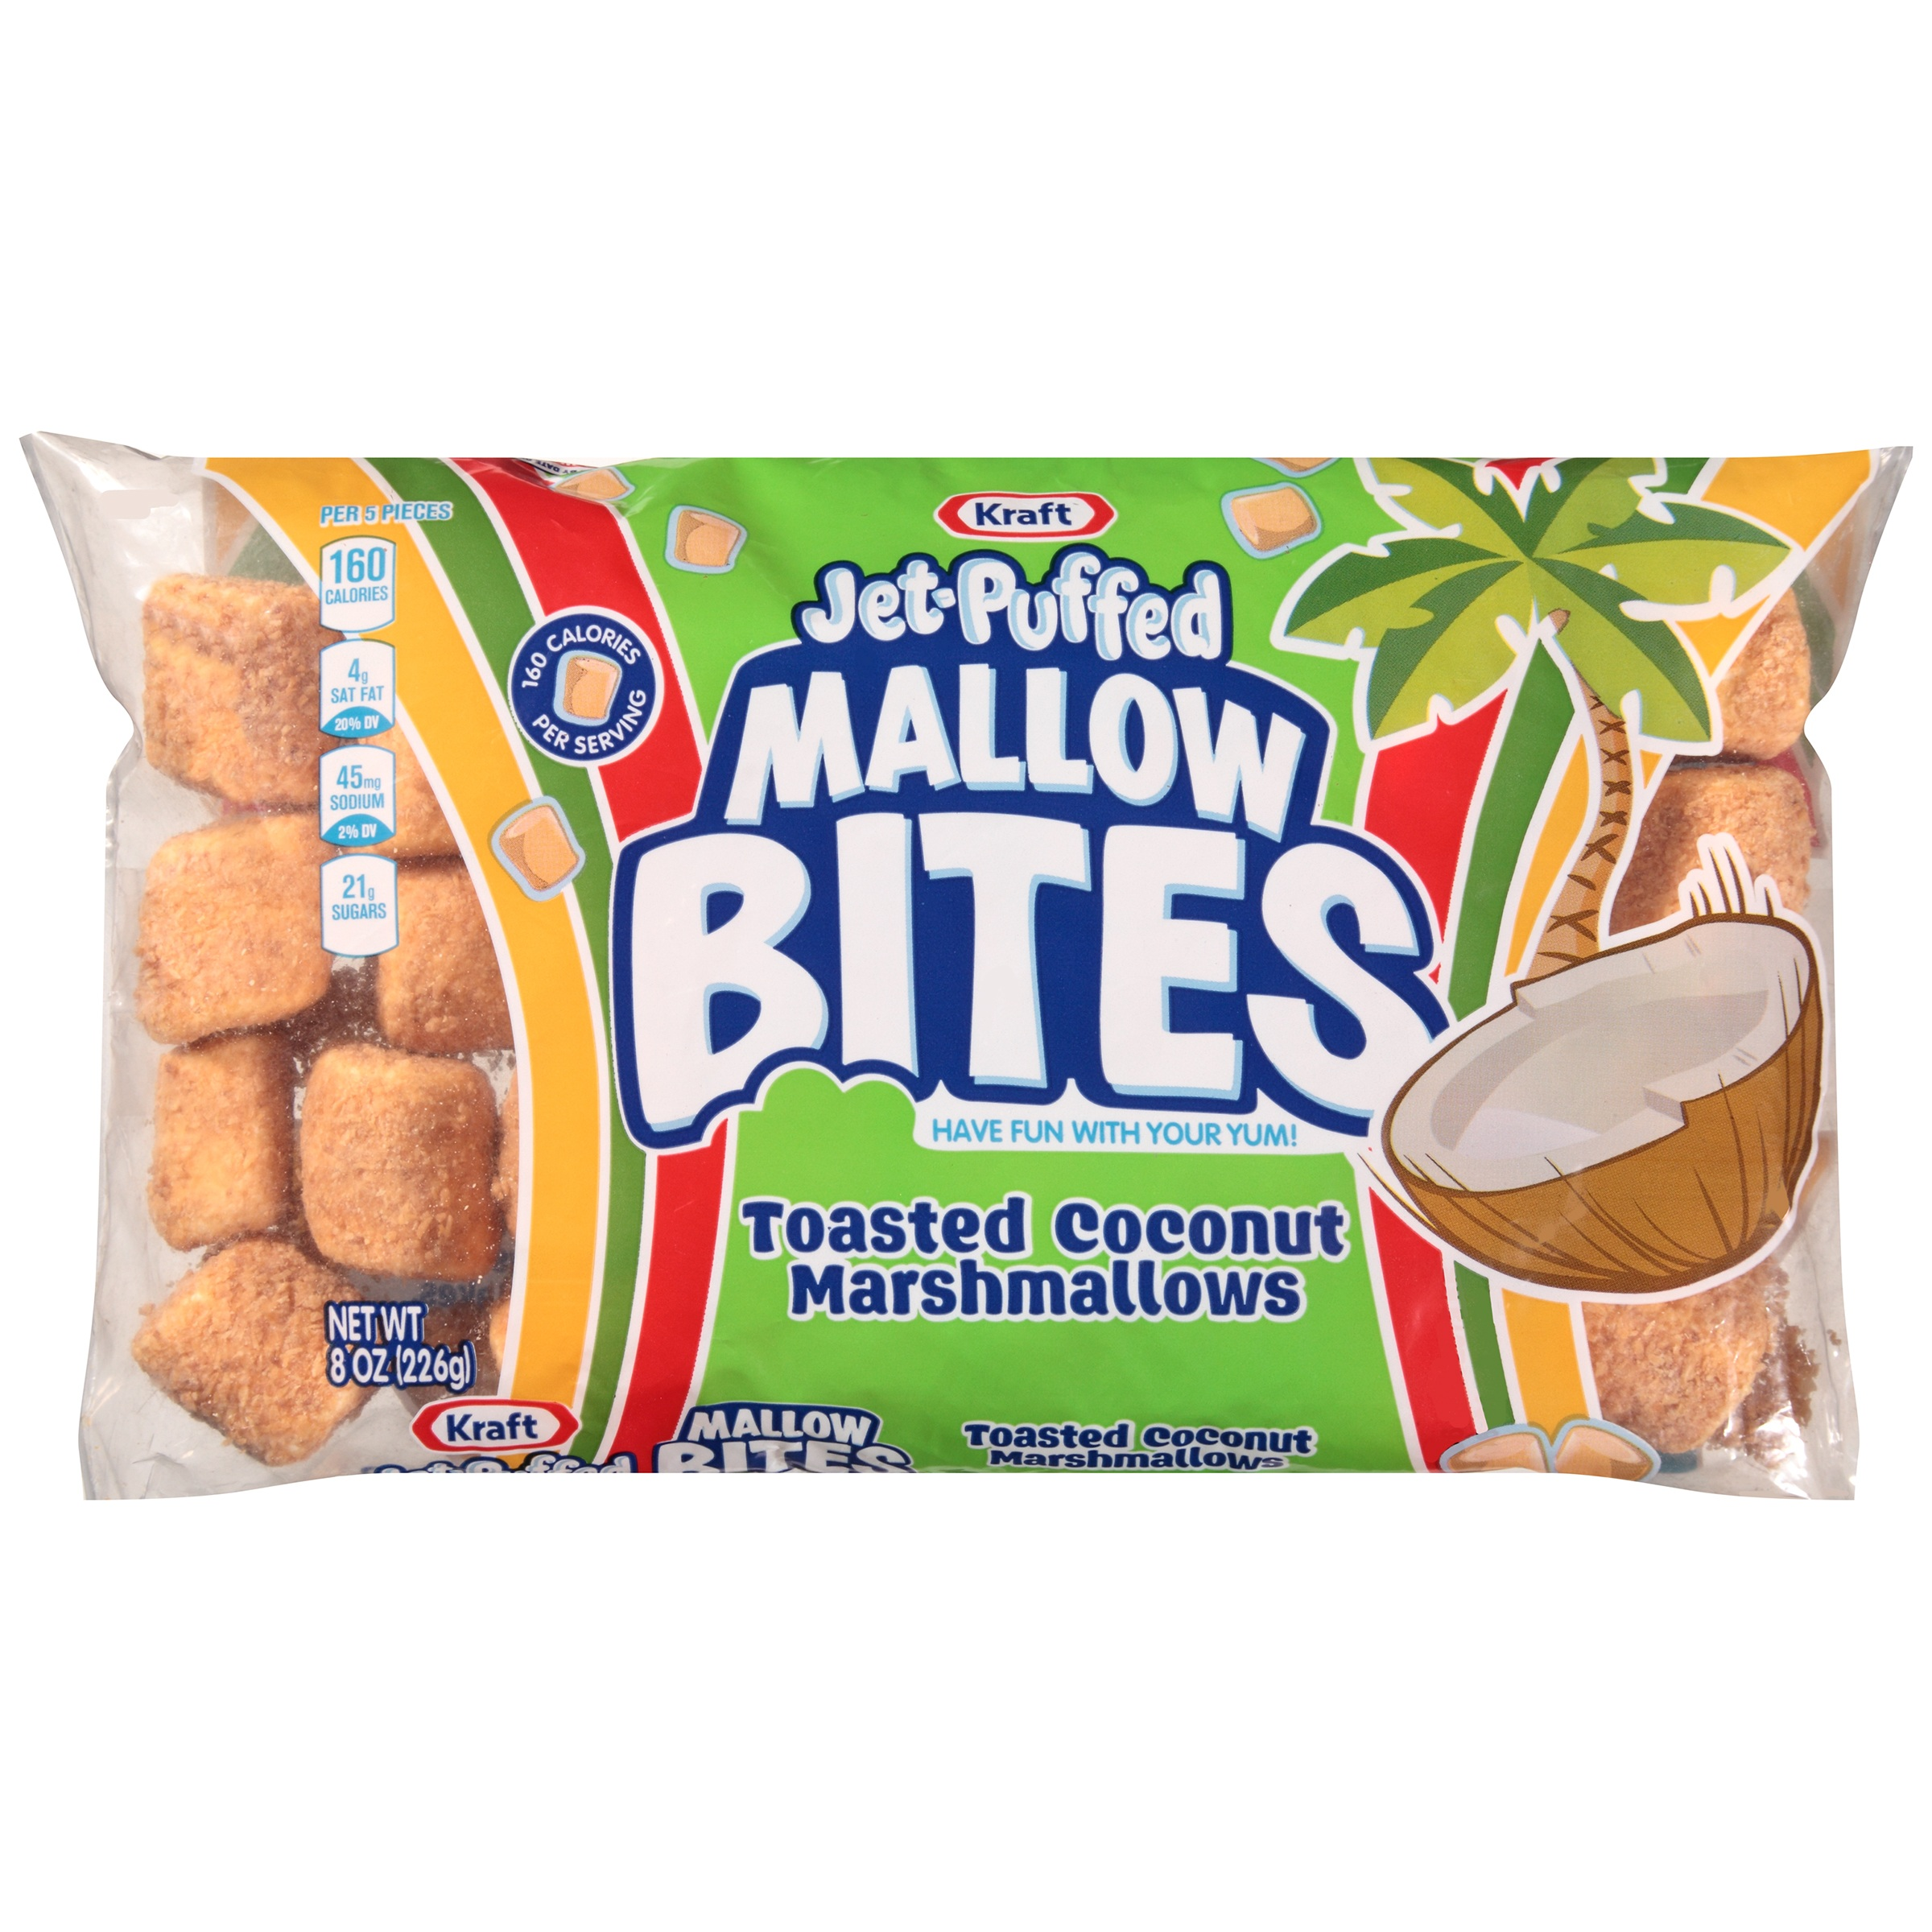 Kraft Jet-Puffed Marshmallows Mallow Bites Toasted Coconut, 8 Oz